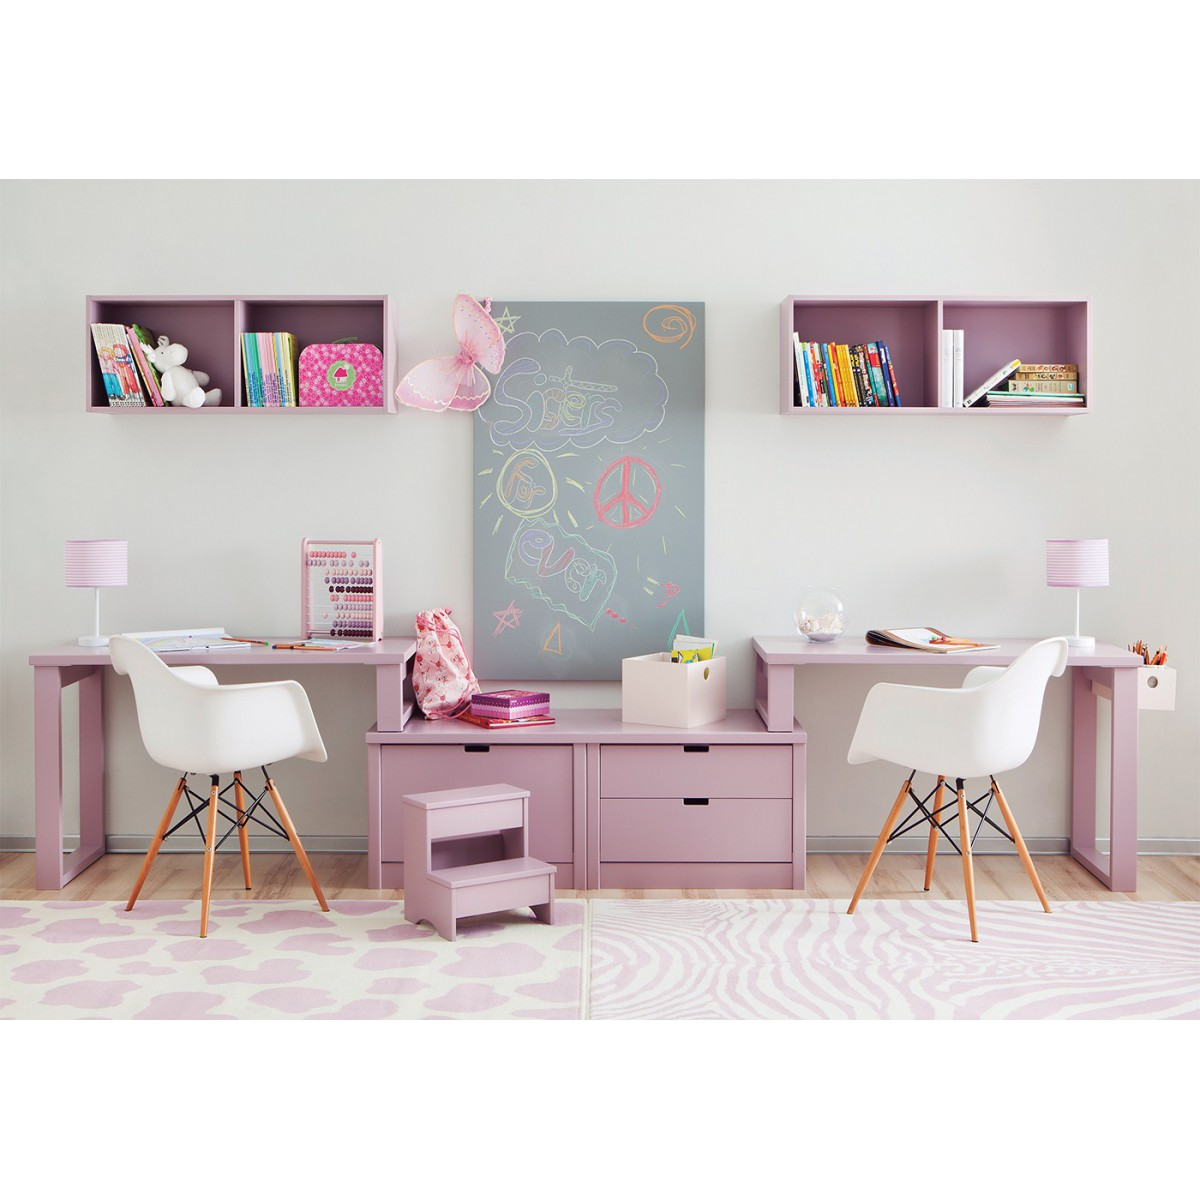 double bureau pour 2 enfants juniors avec caissons de rangement asoral. Black Bedroom Furniture Sets. Home Design Ideas